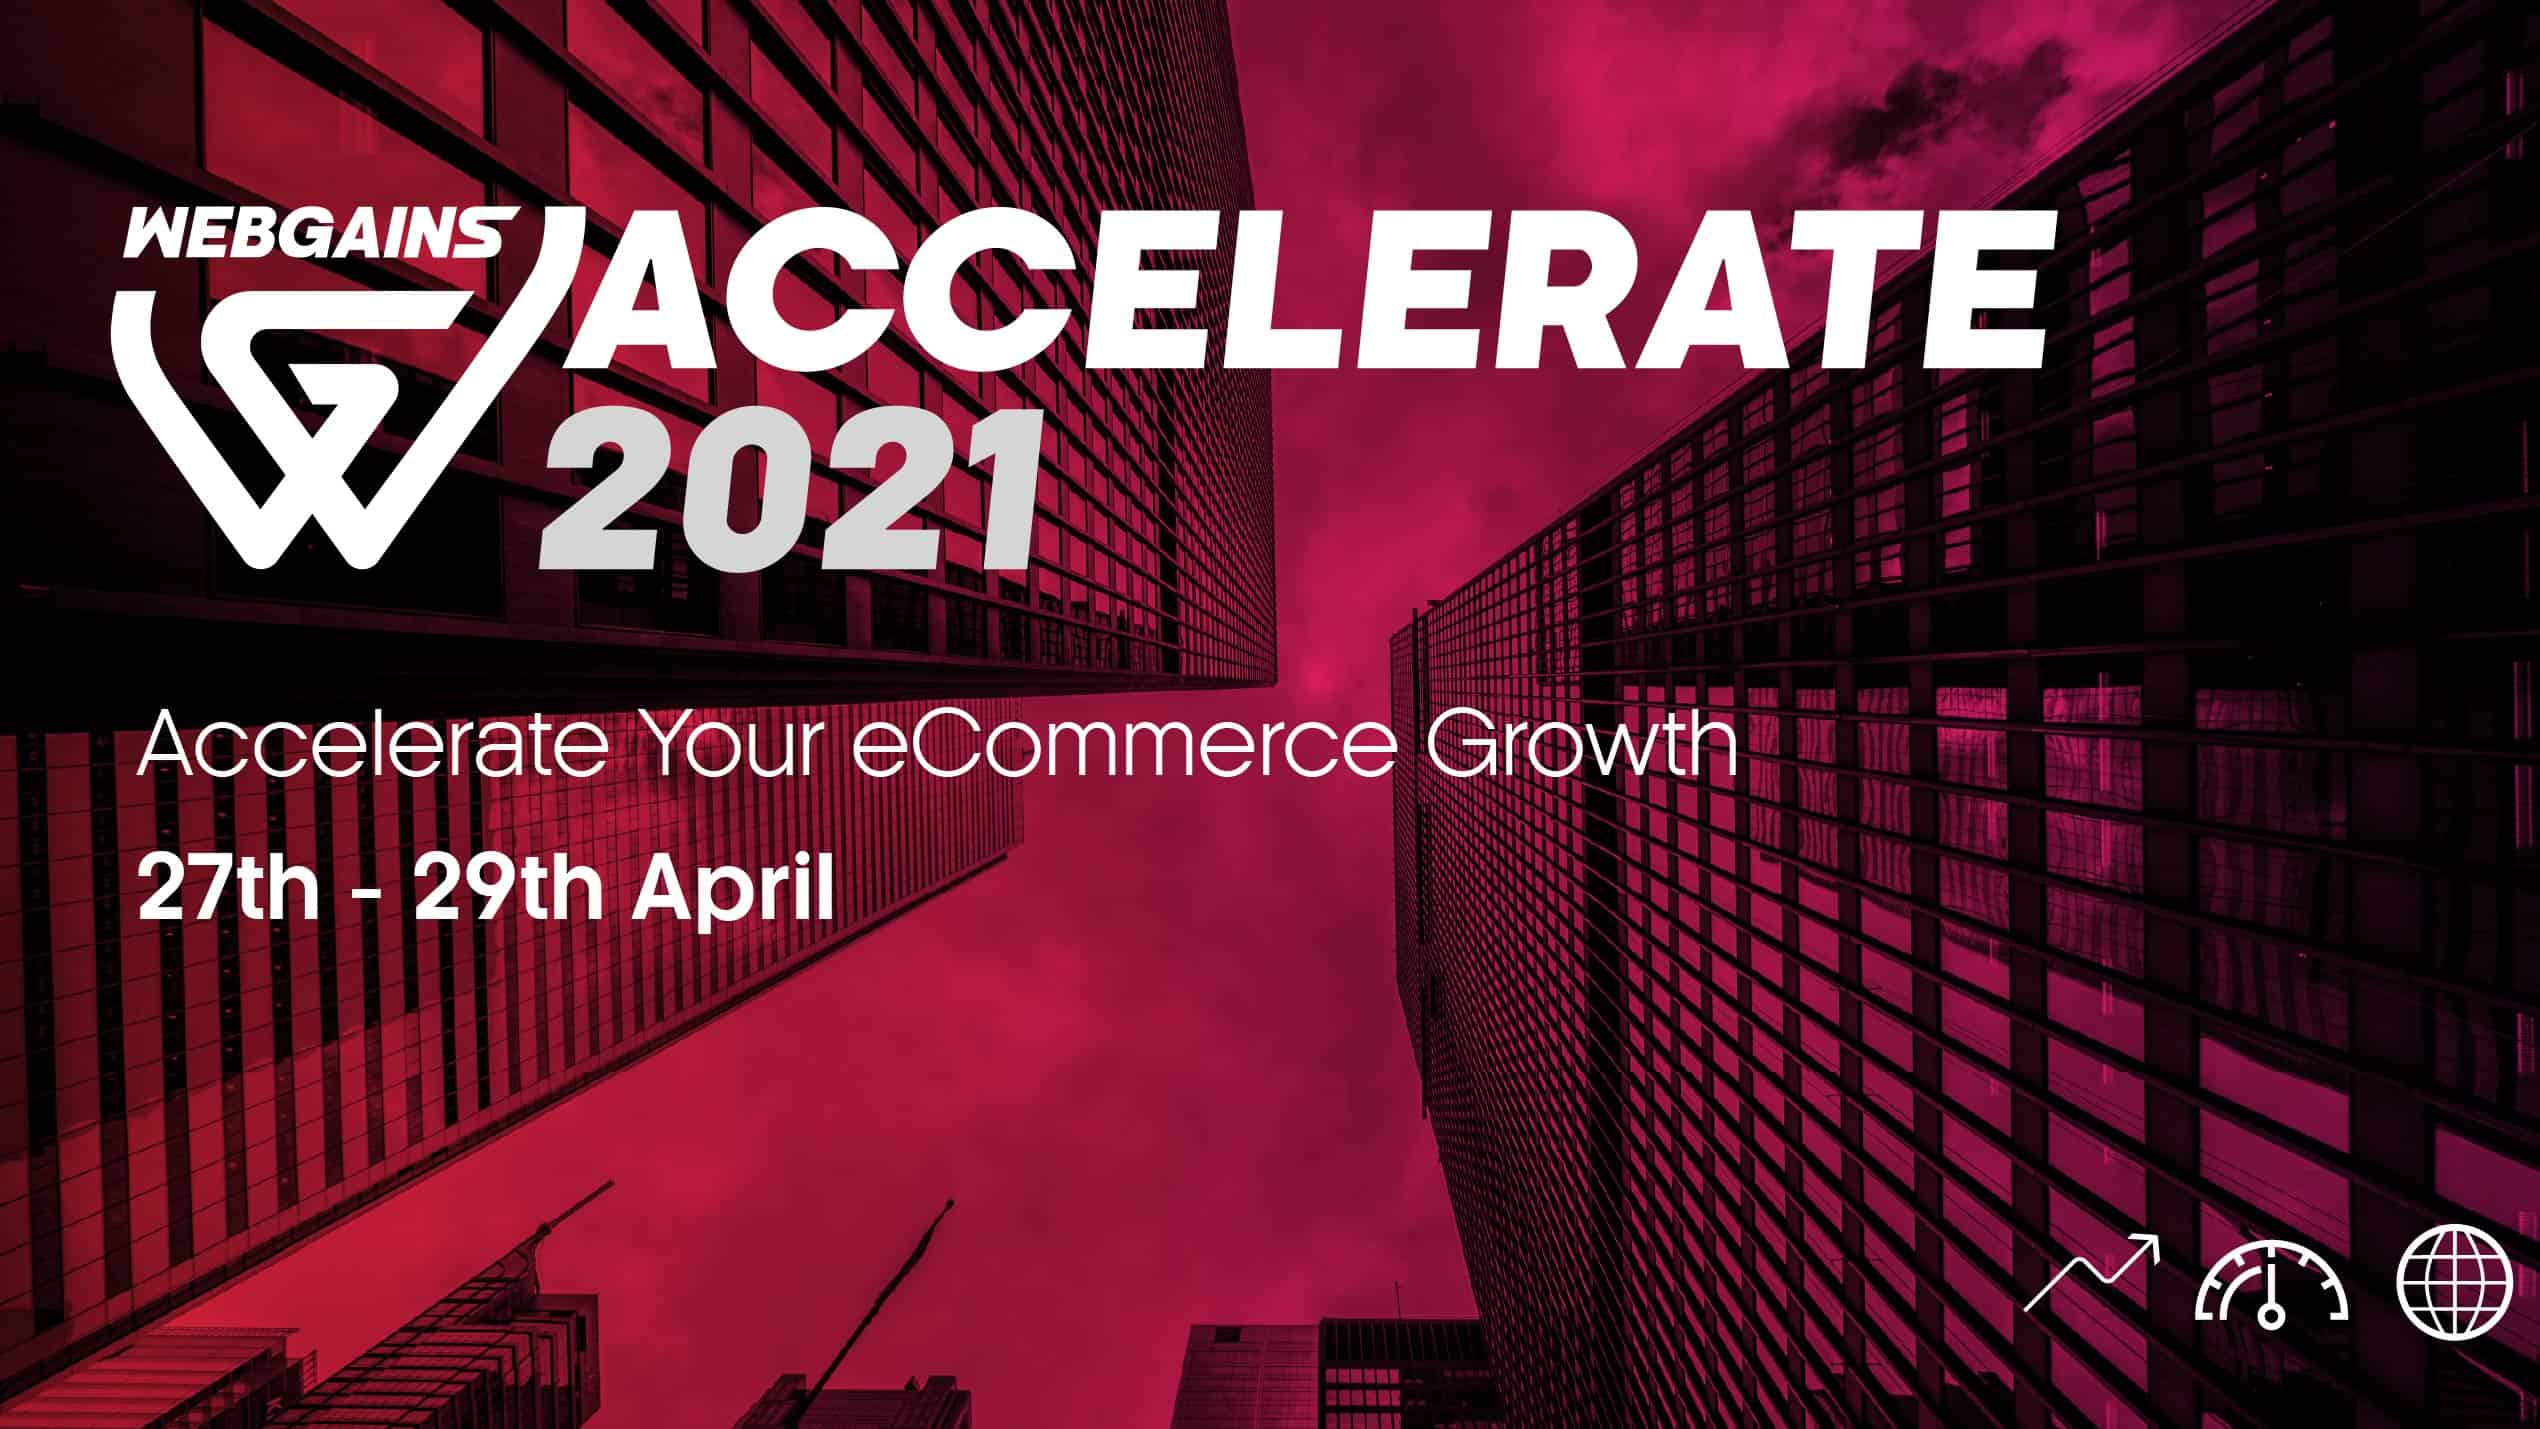 Webgains Accelerate 2021 Event – The Round-Up